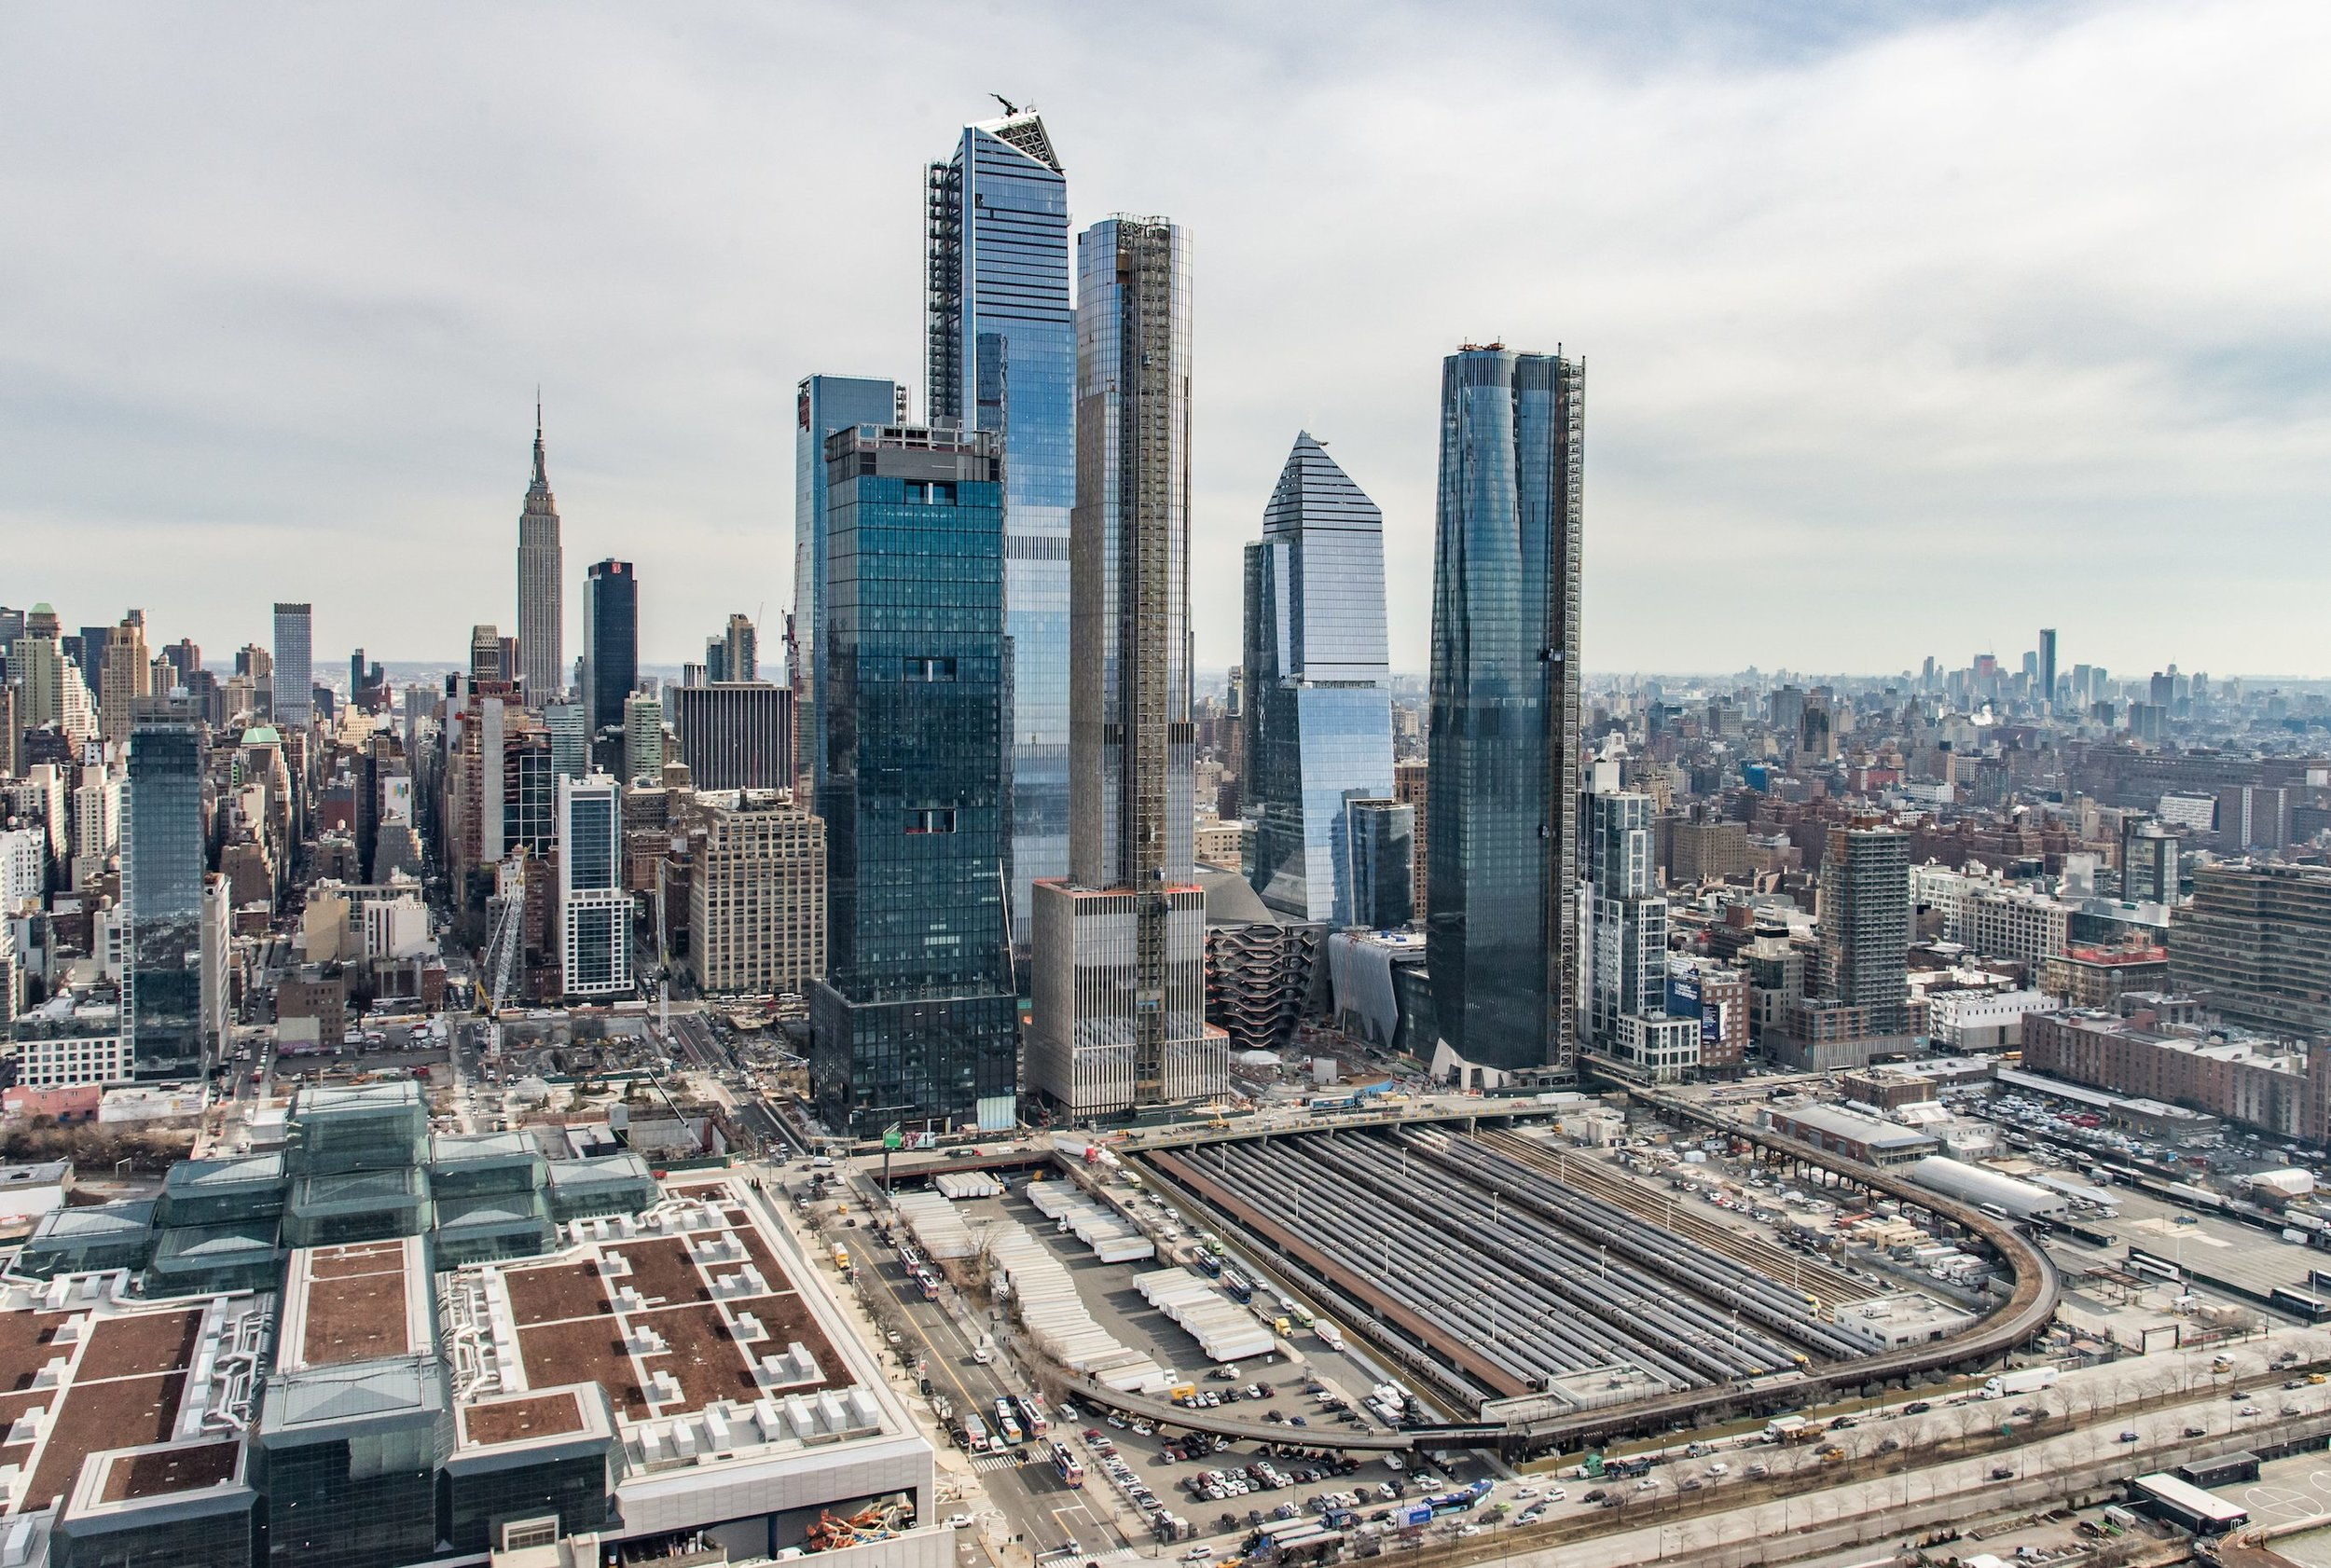 Hudson-Yards-Aerial-View-January-2019-2-courtesy-of-Related-Oxford-e1552669451534.jpg